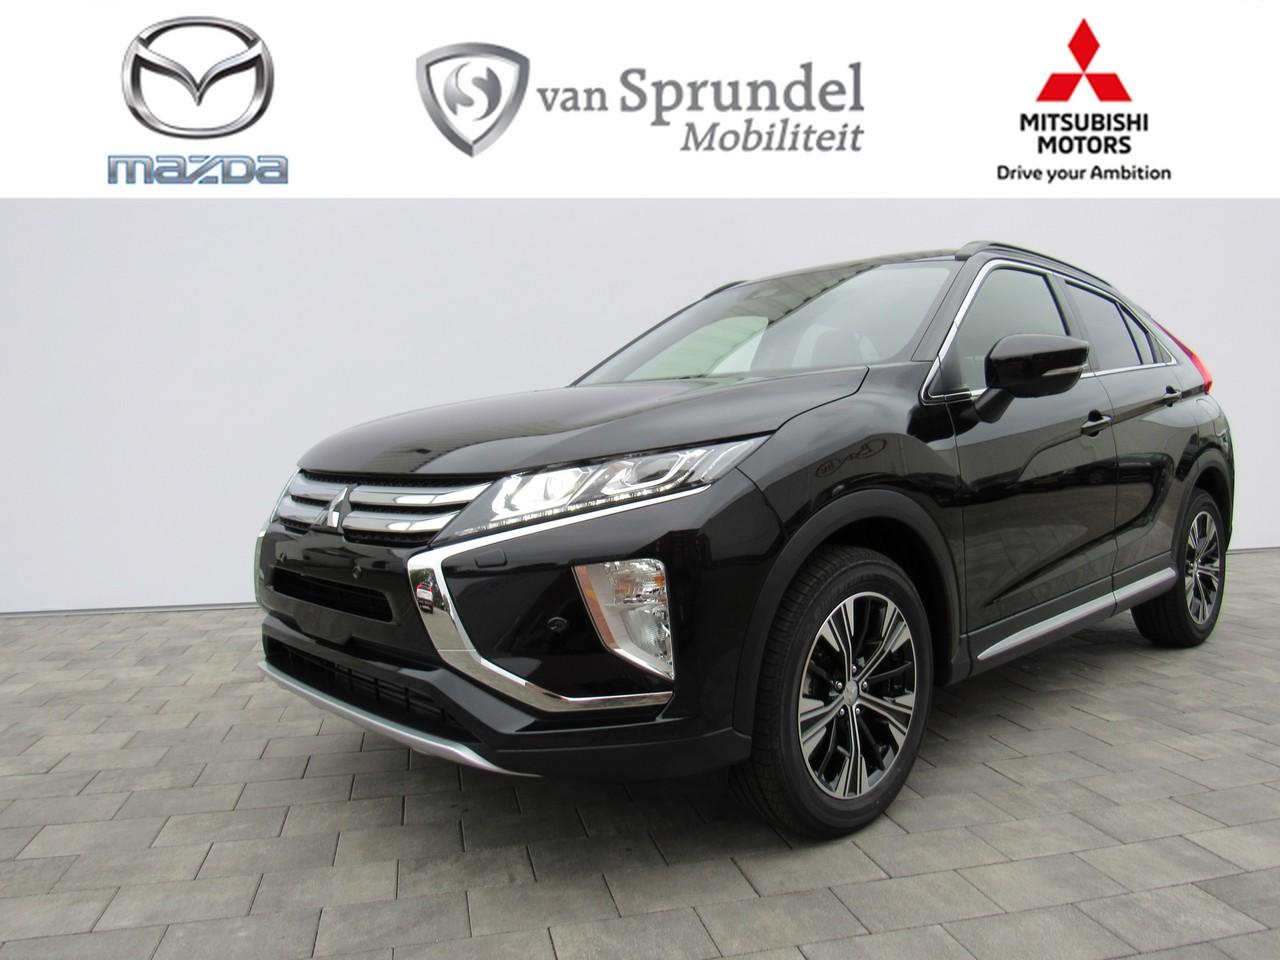 Mitsubishi Eclipse cross 1.5 di-t first edition nu met €4000,- korting!